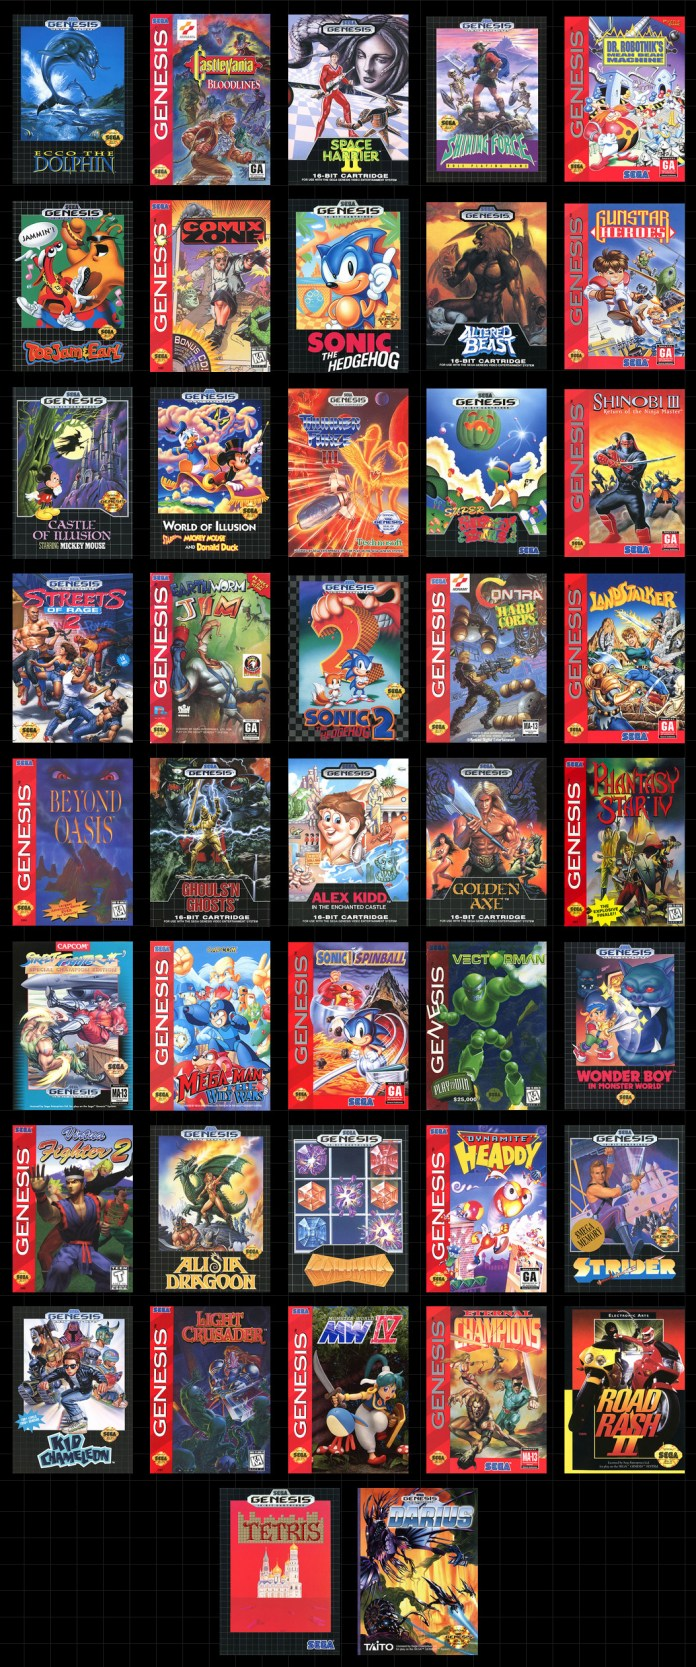 The full list of games for the Sega Genesis Mini